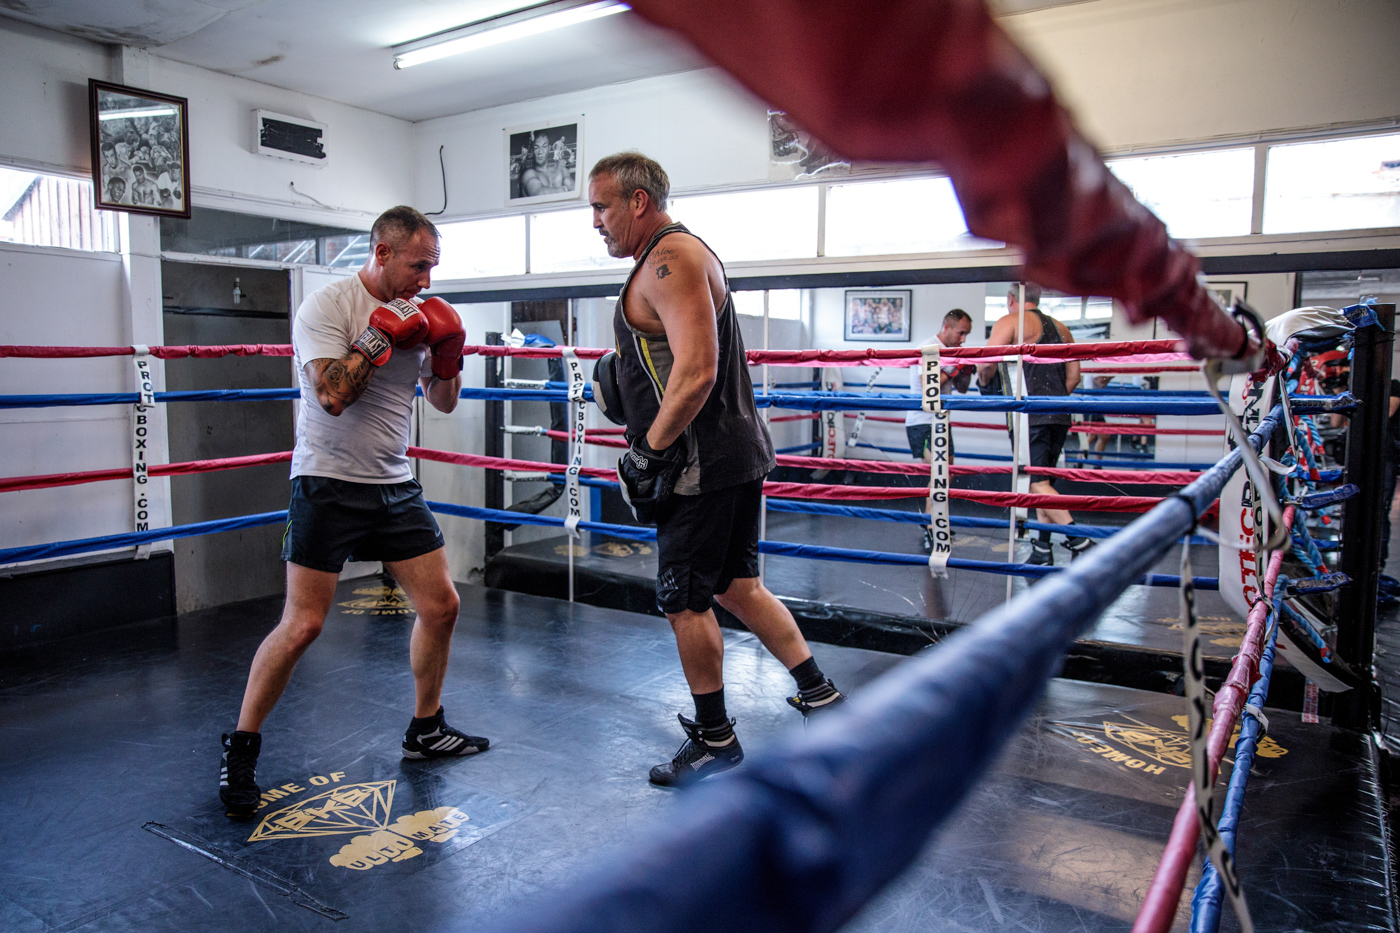 WARRINGTON, ENGLAND: Bare-knuckle boxer and ex-marine Paul Stredder, 35 from the Wirral, (L) trains with bare-knuckle boxing organiser and trainer Shaun Smith, 52 (R) at a training session at Smithys Gym on June 4, 2018 in Warrington, England